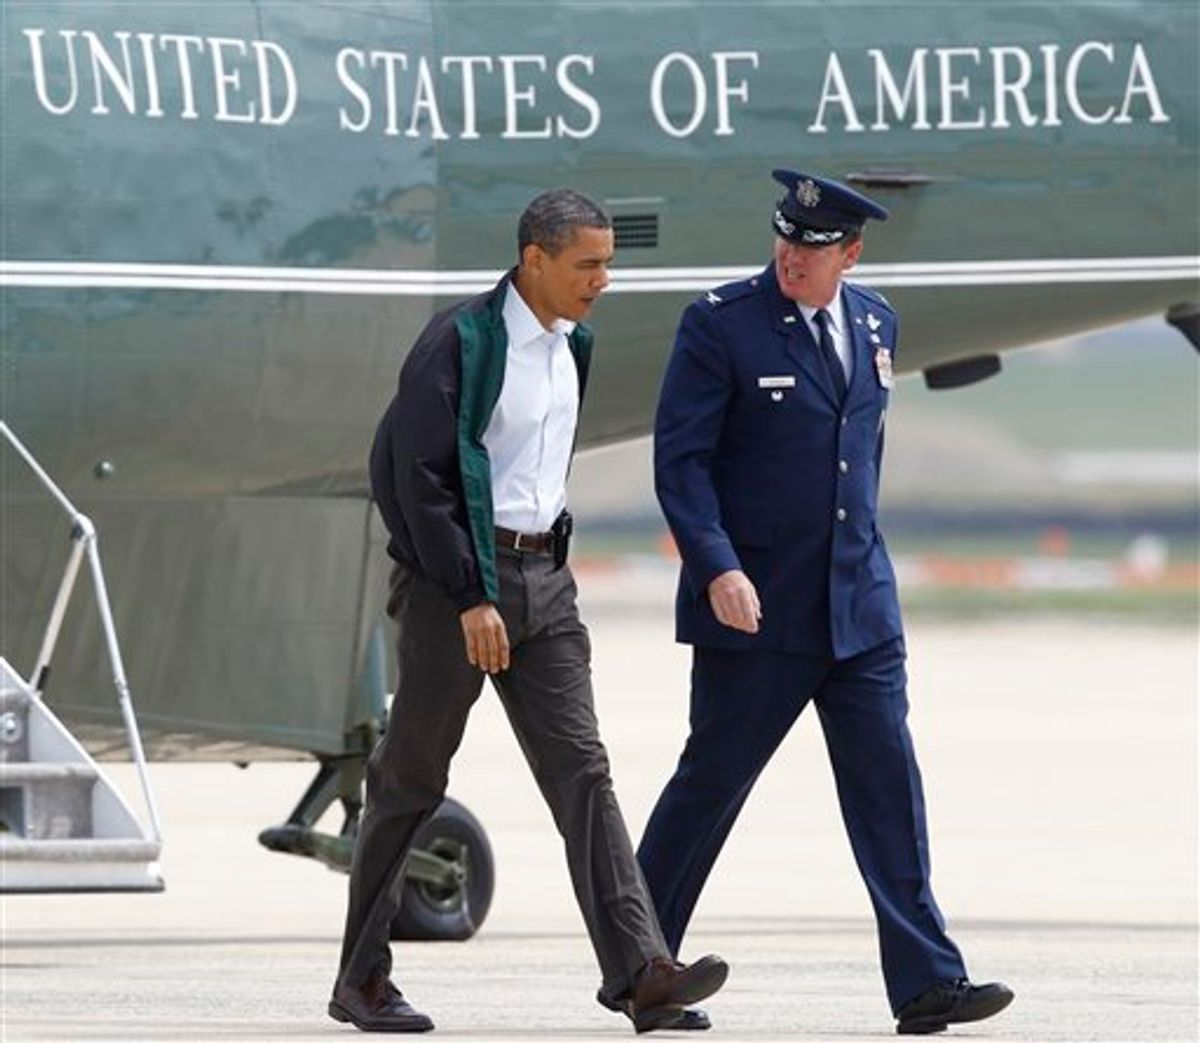 President Barack Obama walks with Col. Lee dePalo, Vice Commander of the 11th Wing, towards Air Force One at Andrews Air Force Base, Md., Sunday, May 29, 2011, on his way to visit tornado victims in Joplin, Mo. (AP Photo/Luis M. Alvarez) (AP)